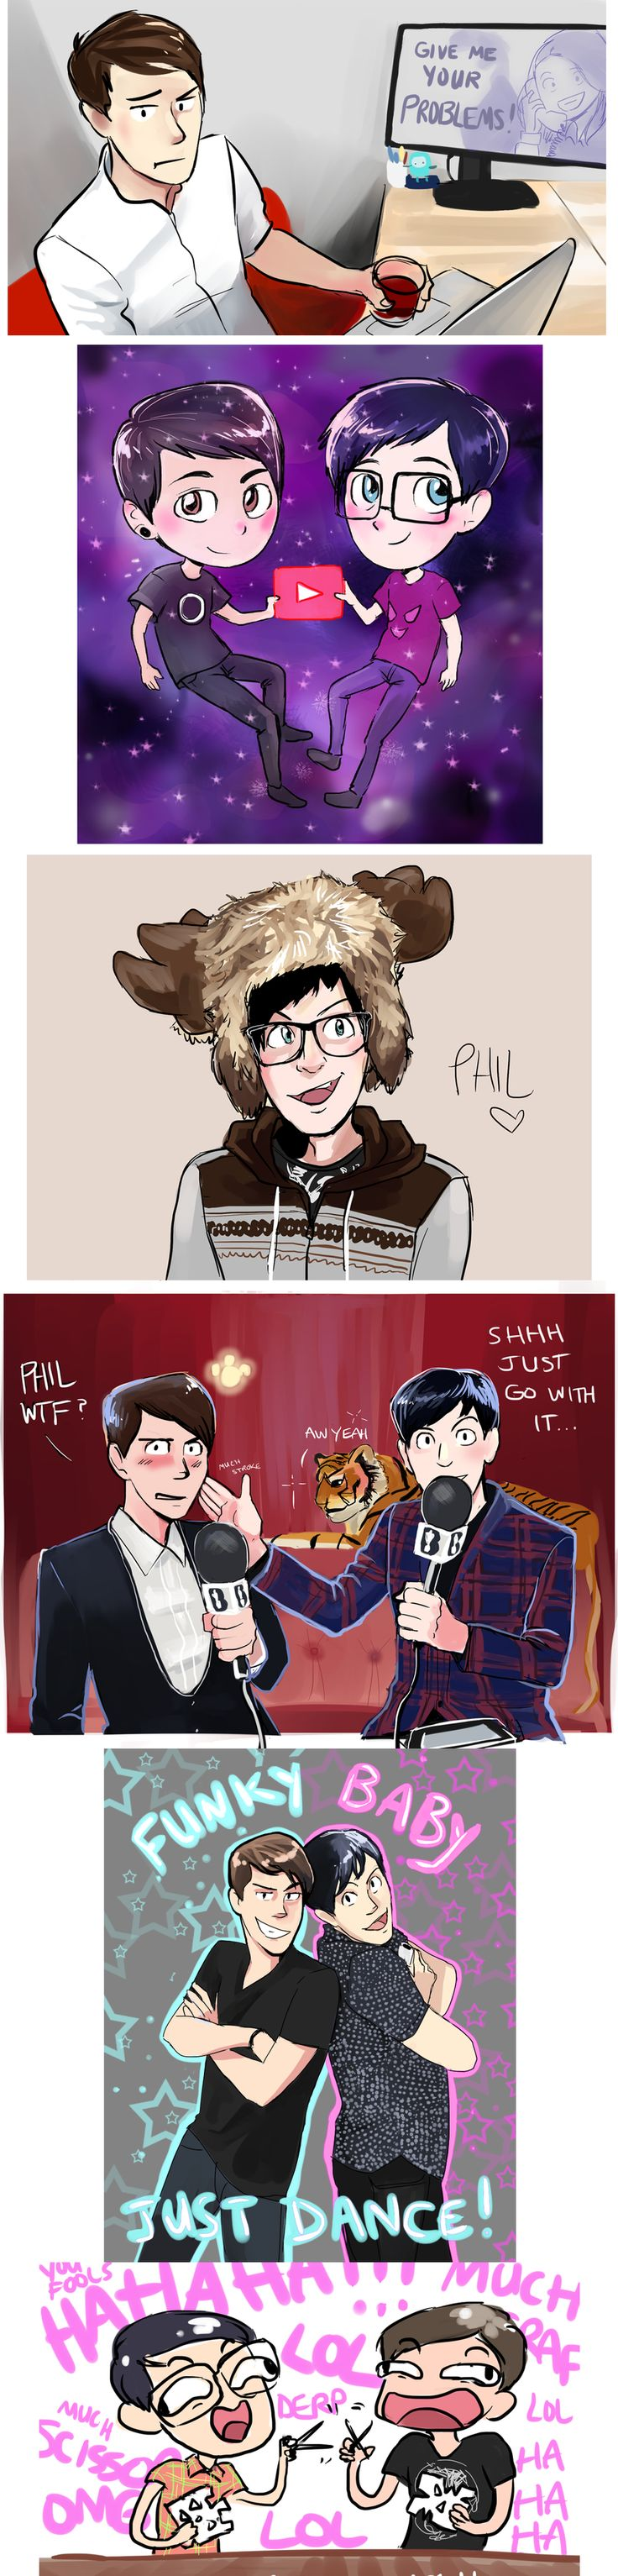 dan and phil five nights at freddy's - Google Search Like & Repin. Noelito Flow. Noel Music. | @ashiepop67